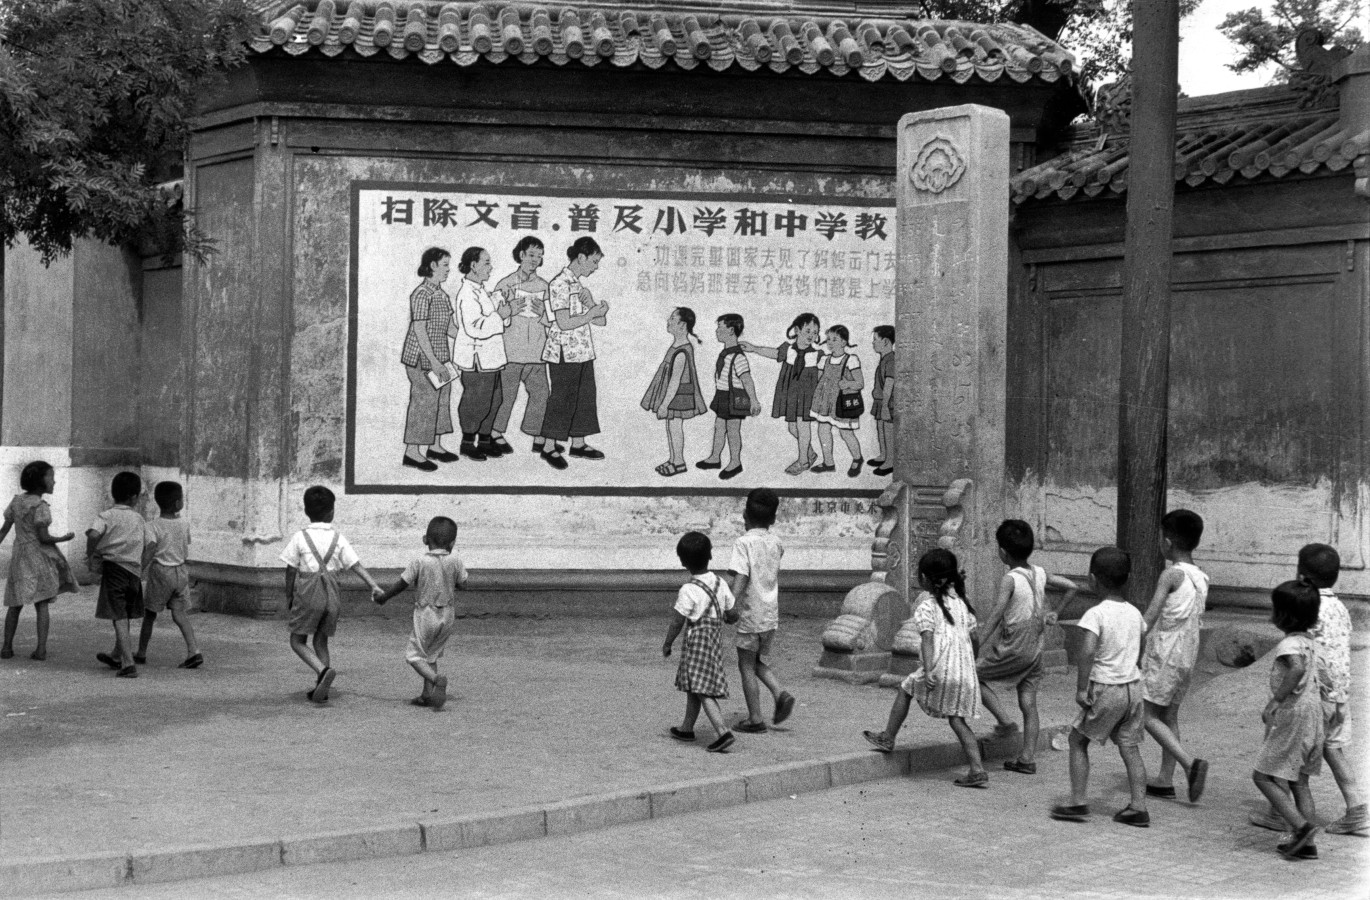 great leap forward essay The great leap forward (1958-1961) had a vast impact on china and its people mao zedong, leader of china's communist party (1949-1973) aim in proposing the campaign was to 'overtake all capitalist countries in a fairly short time, and become.